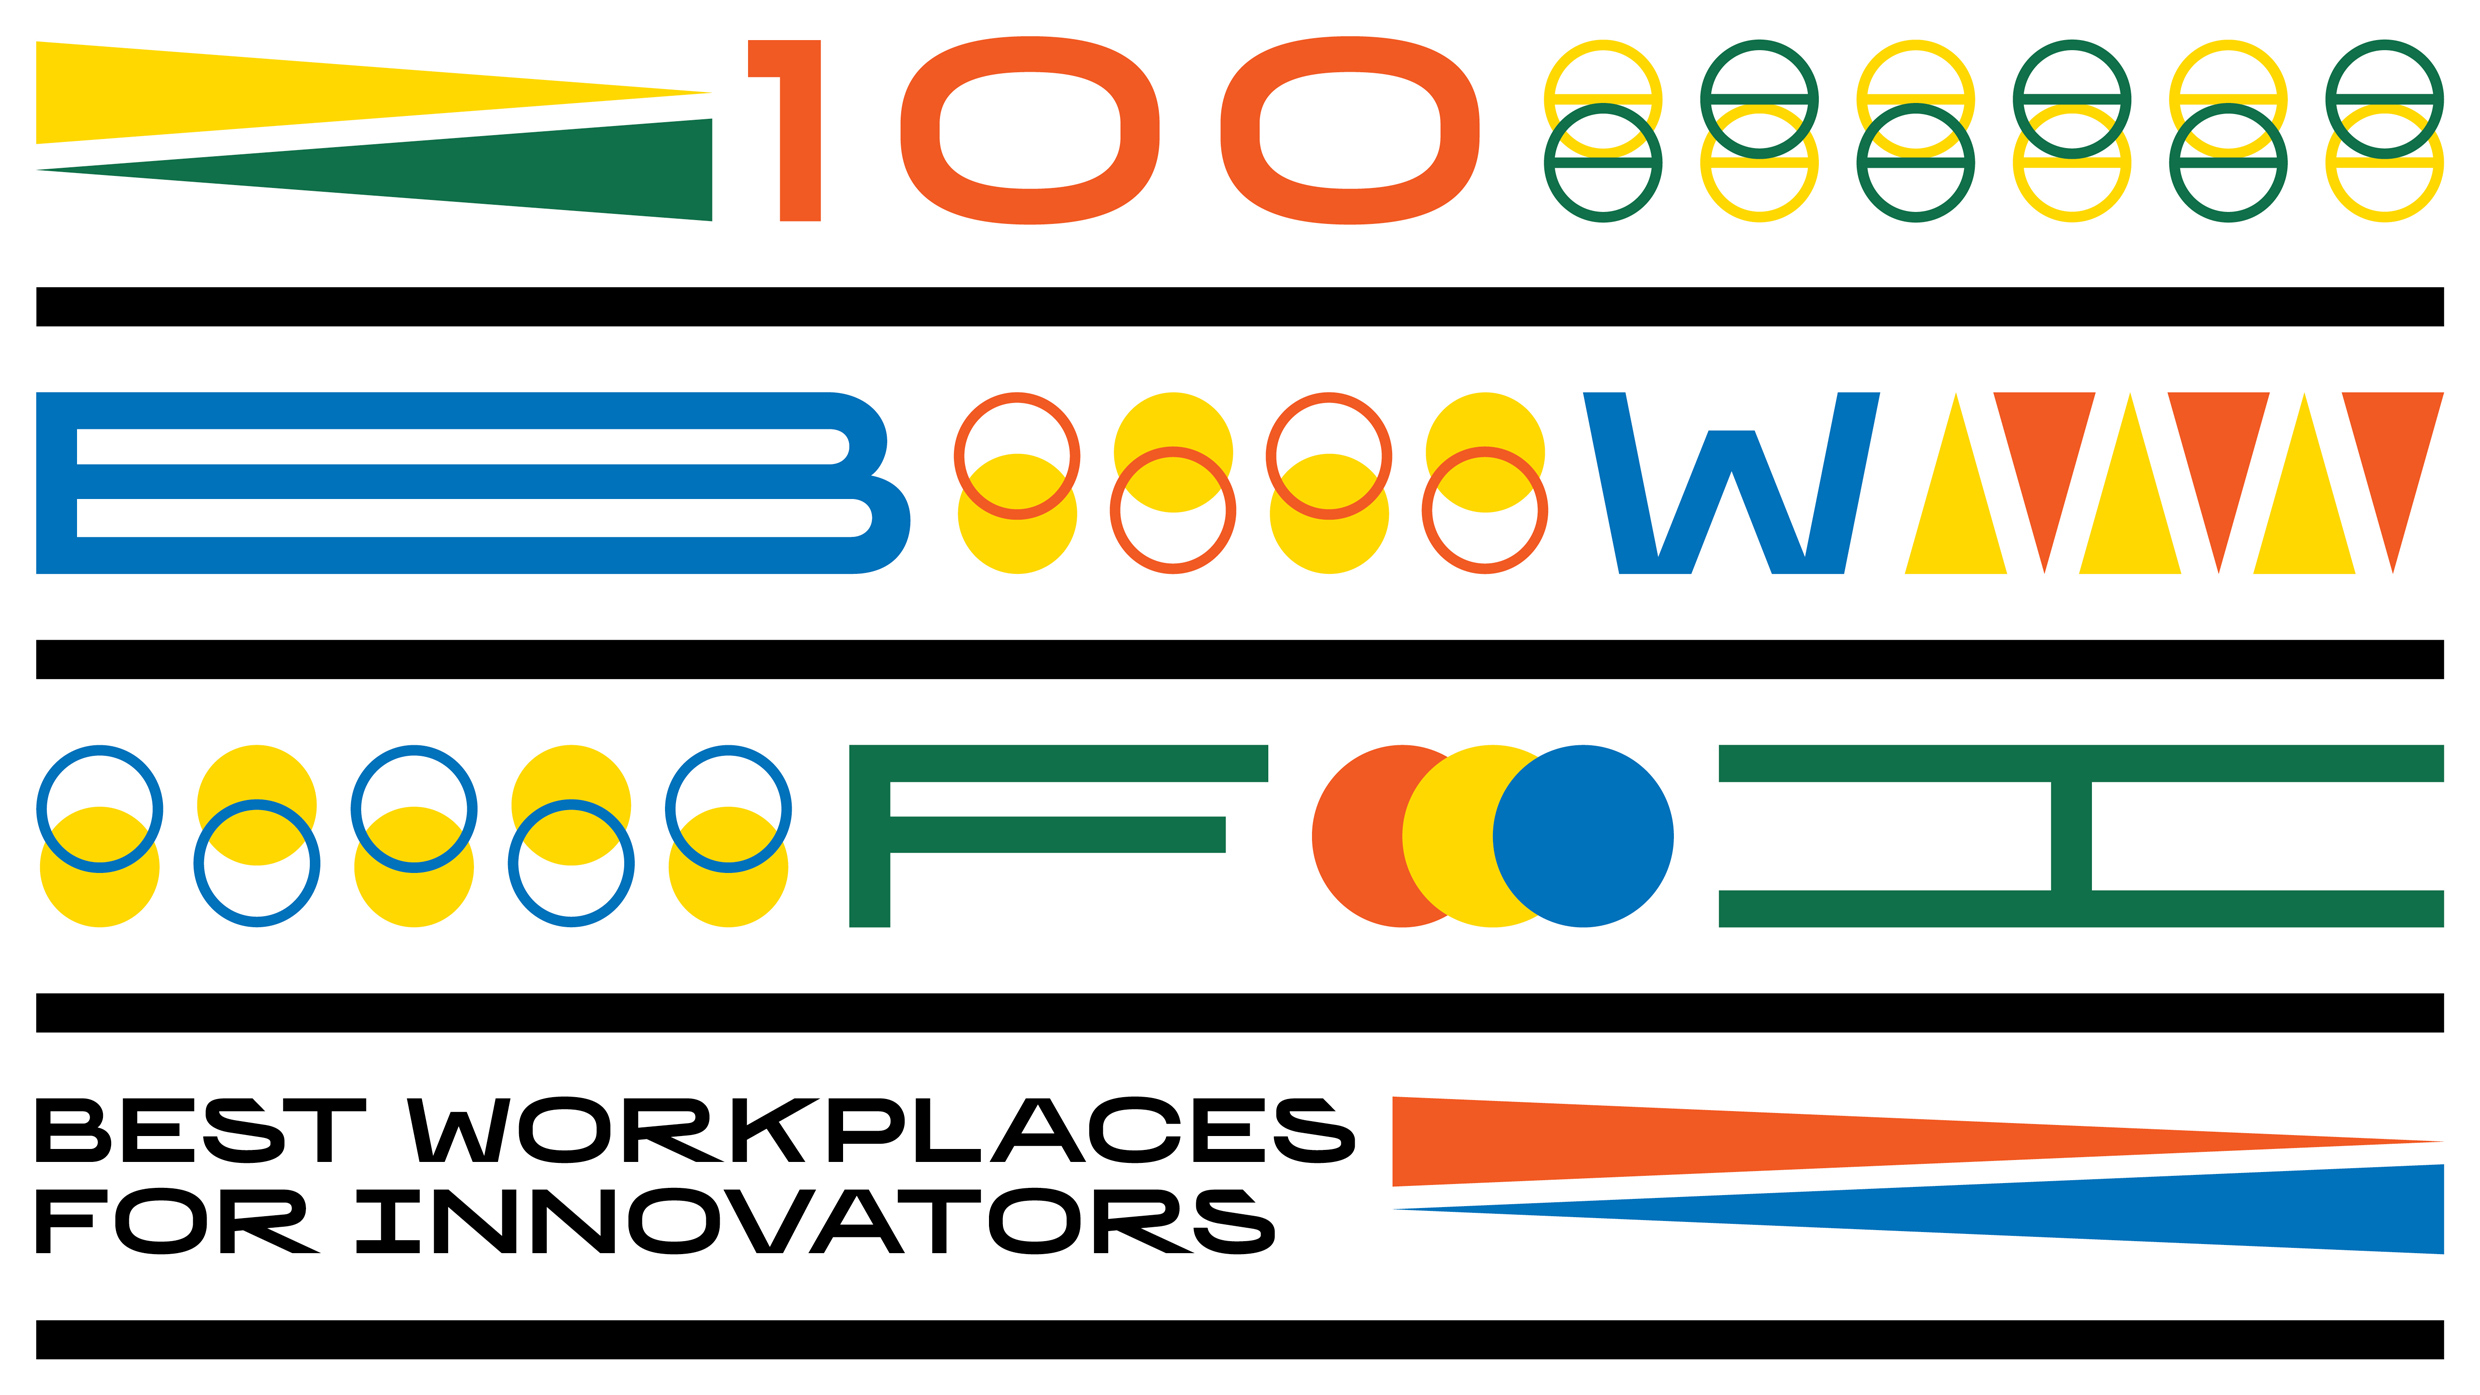 Best Workplaces for Innovators 2020